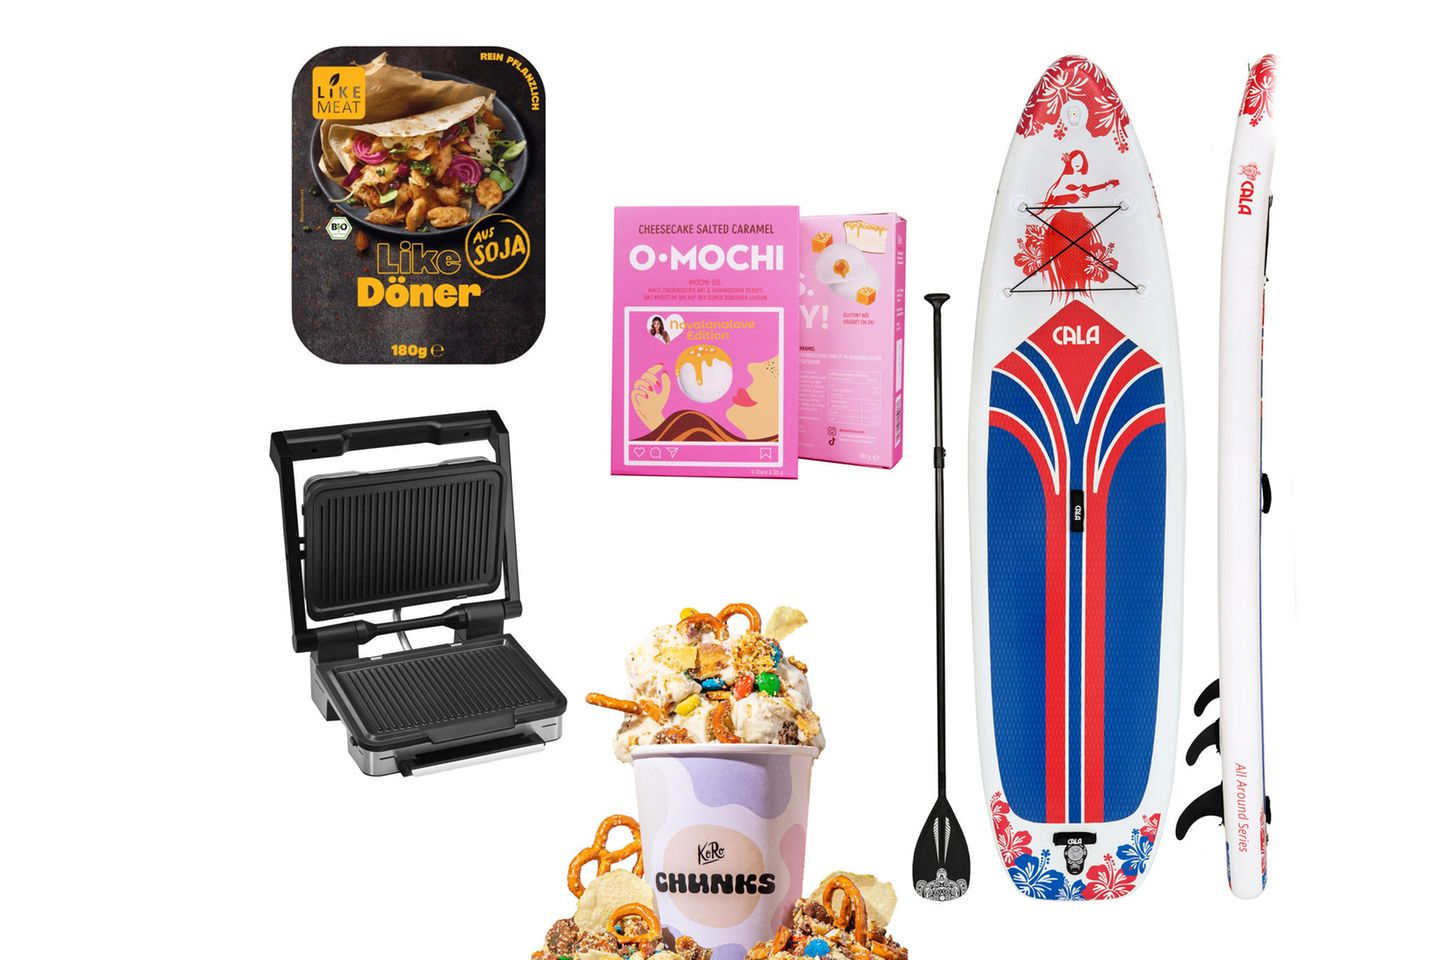 Unsere 5 Lifestyle Musthaves im August